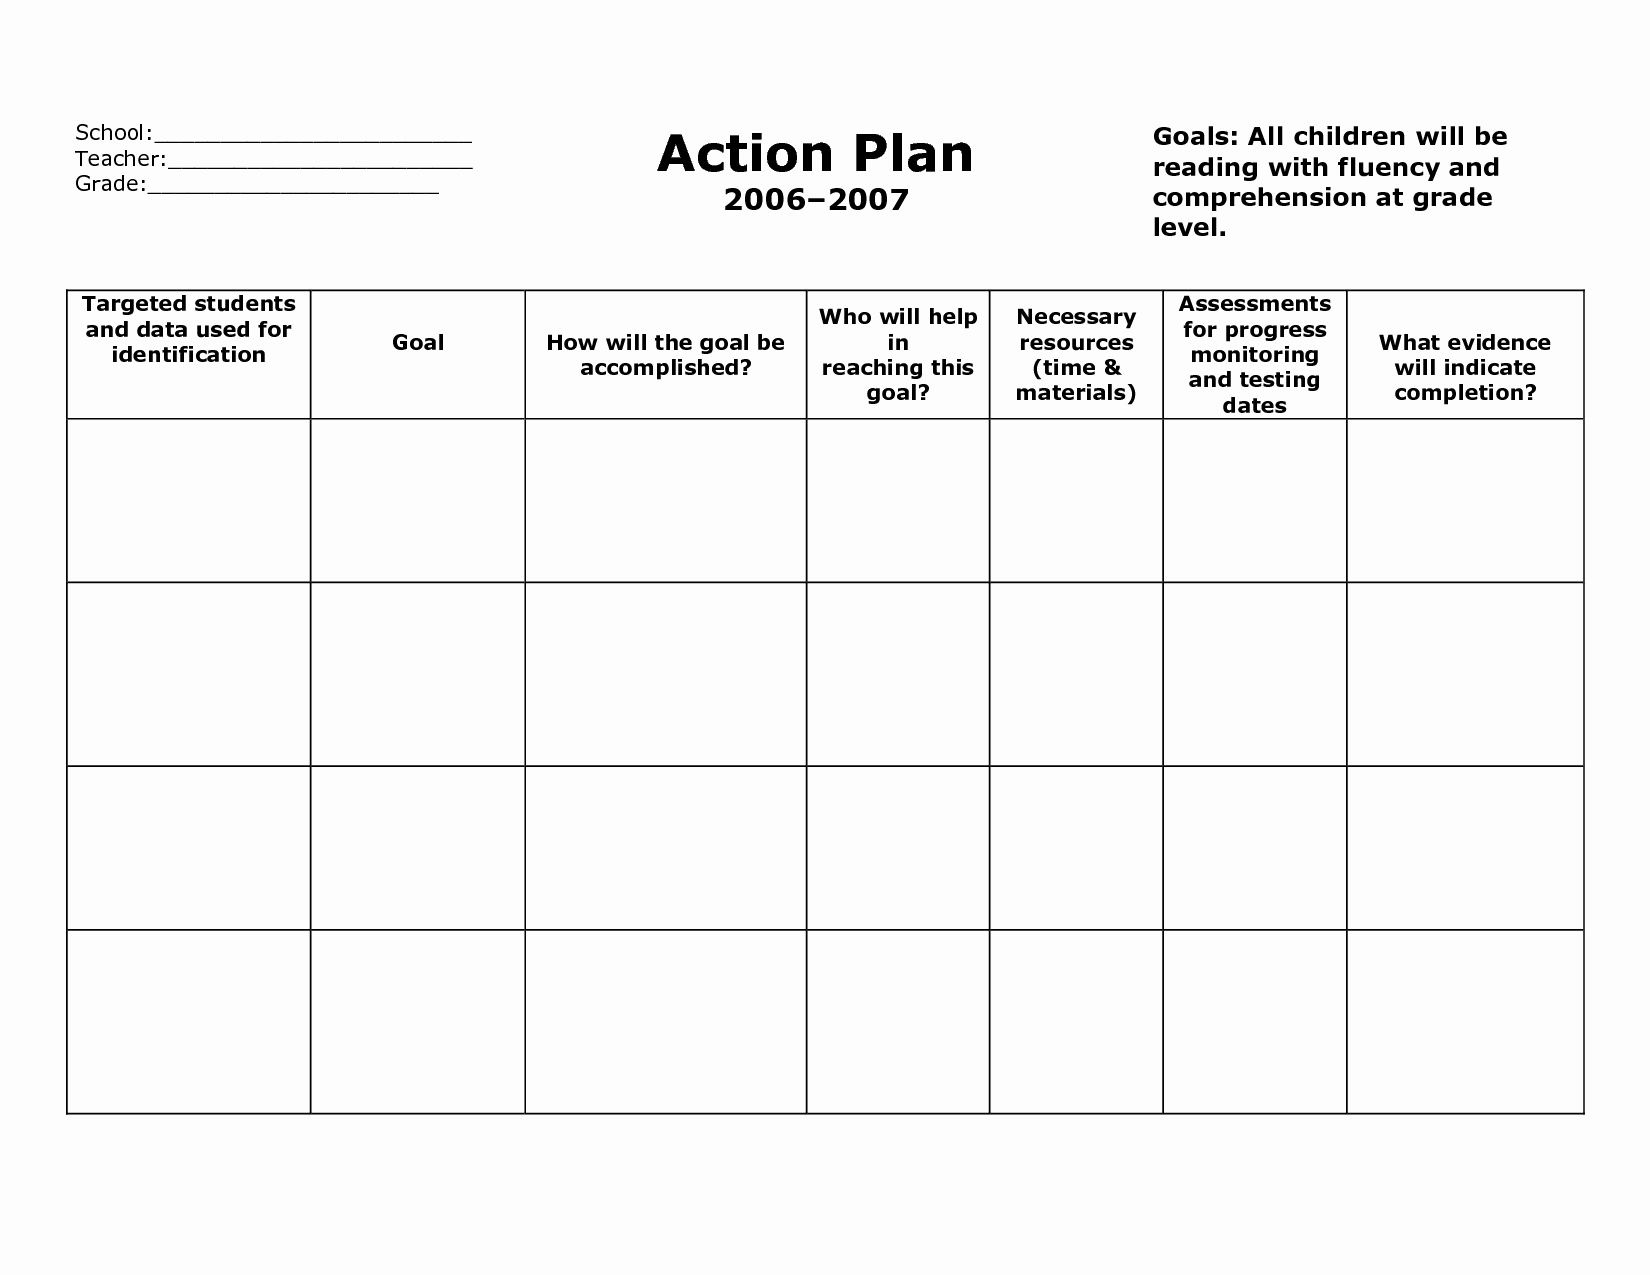 Sample Action Plan for Teachers Beautiful Action Plan Template Action Plan format V5fclyv5